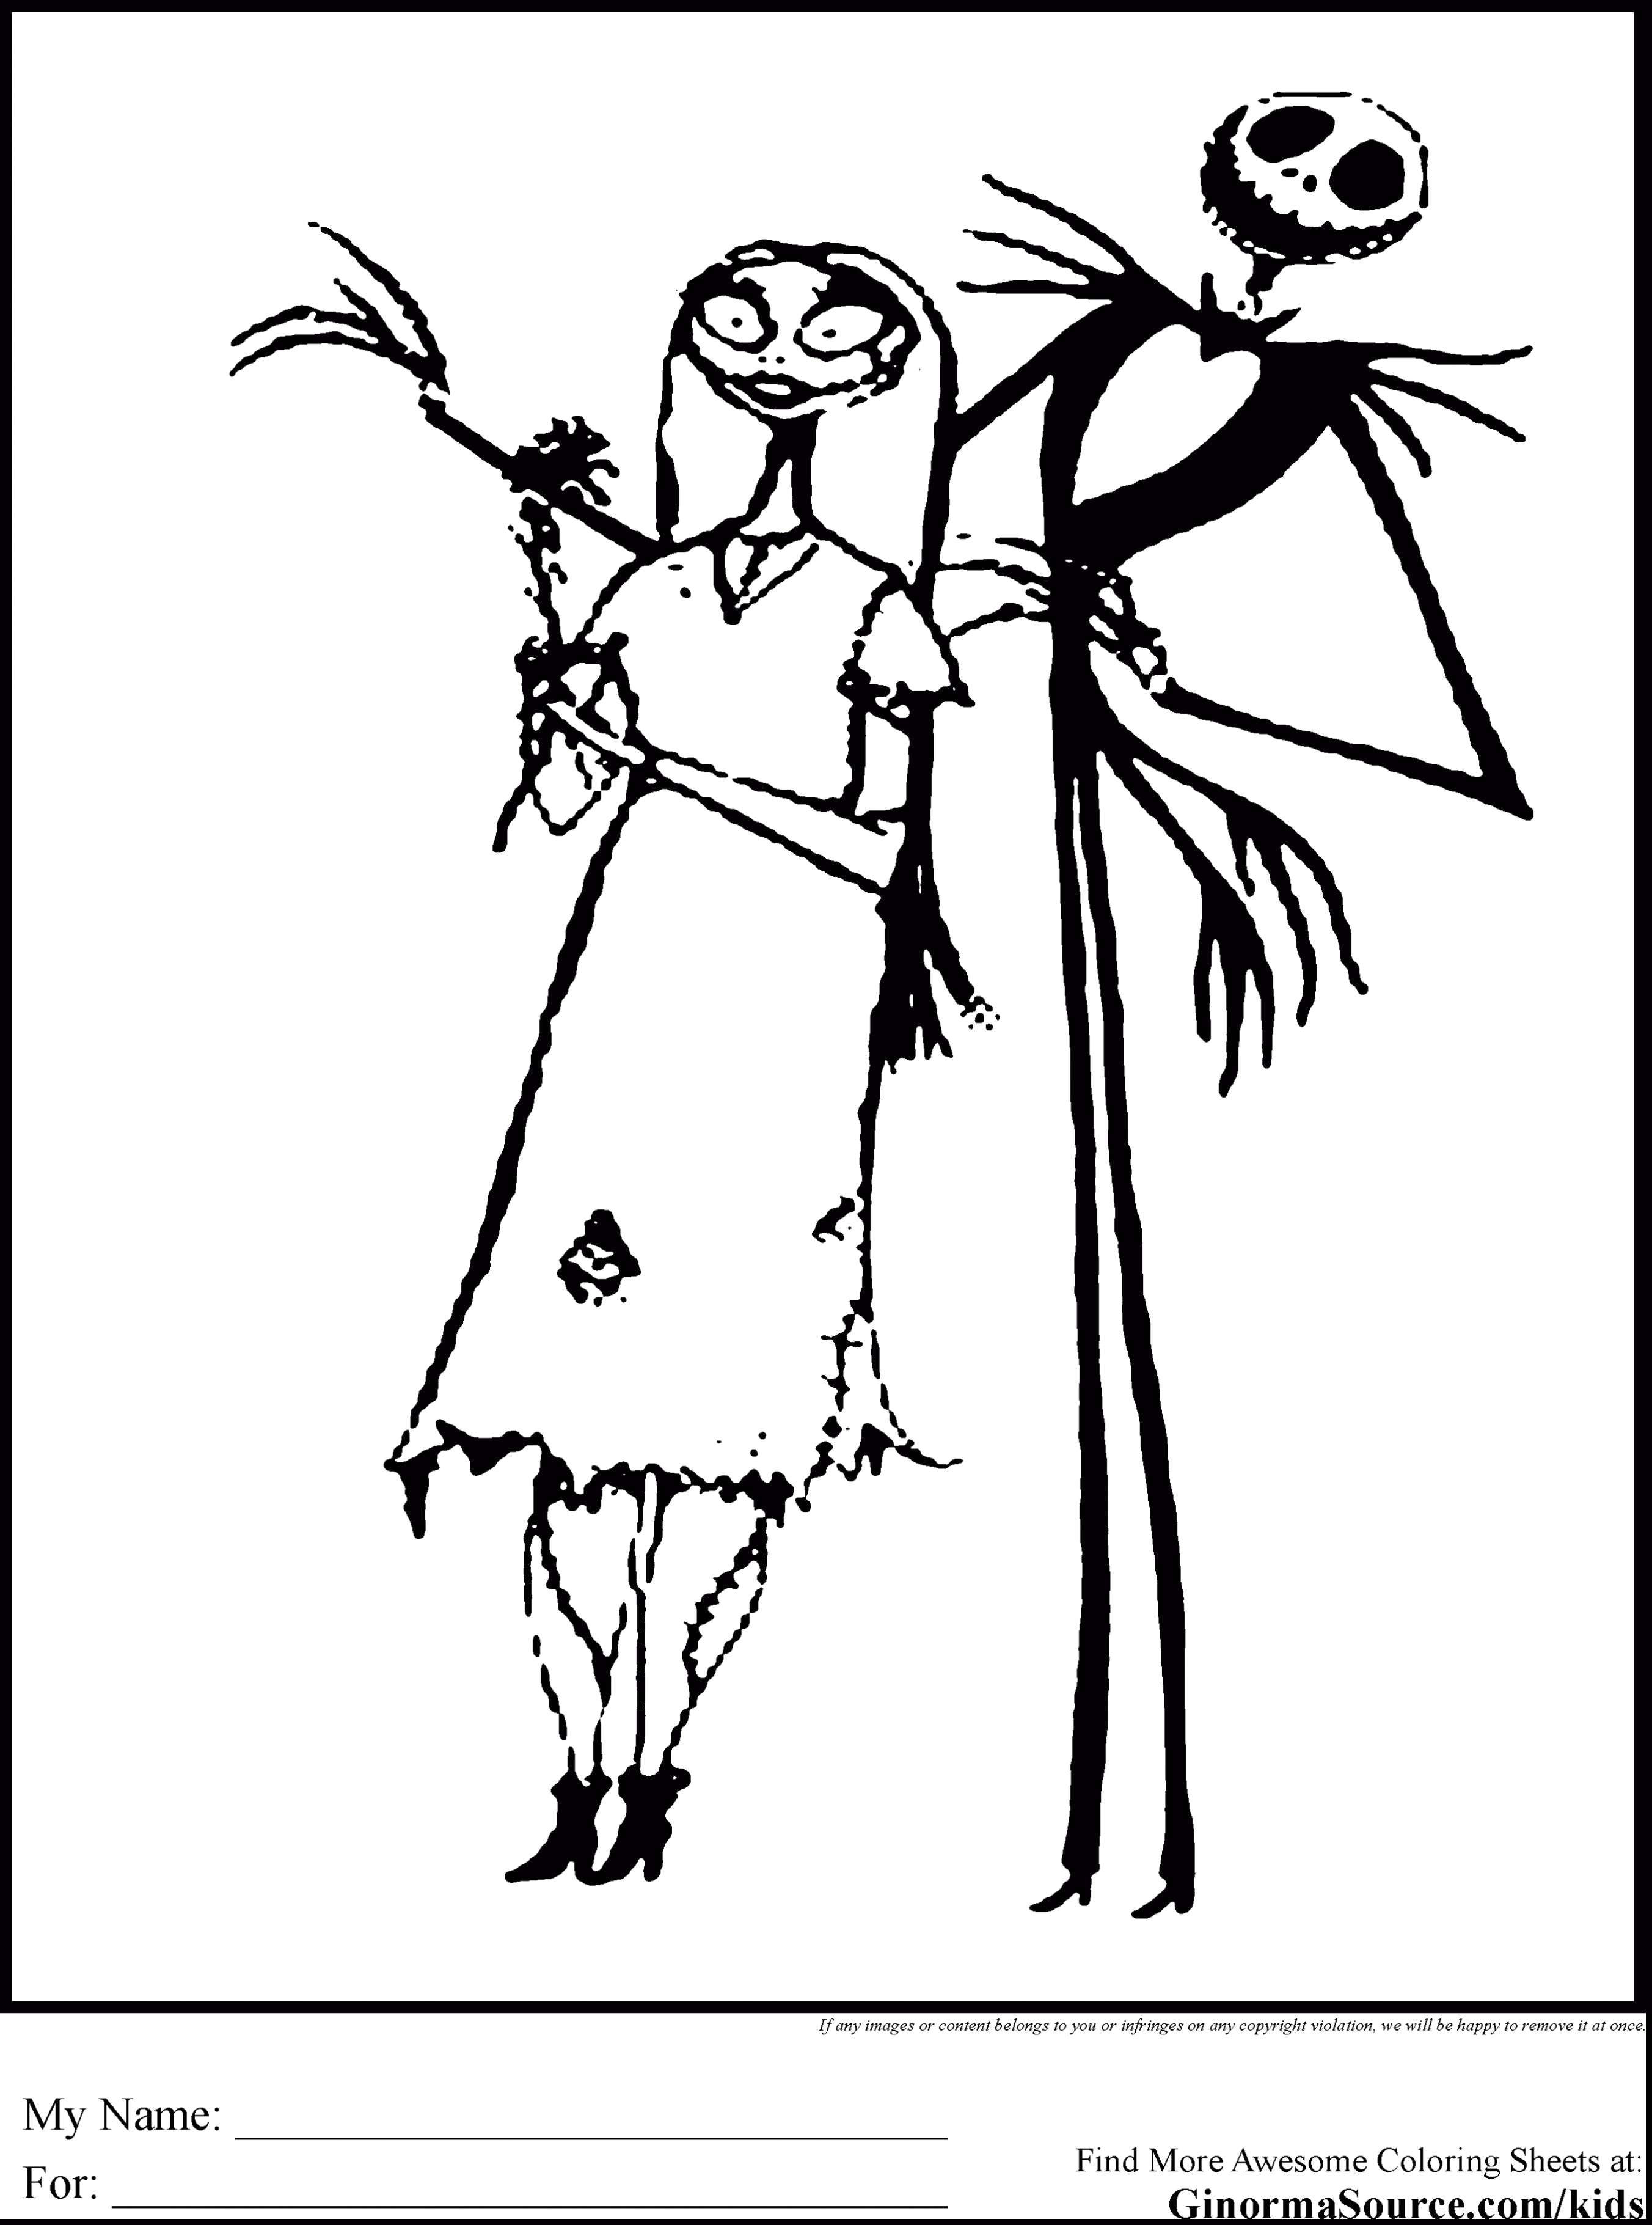 Nightmare Before Christmas Zero Coloring Pages With Free Printable Pumpkin Stencils Lovely 84